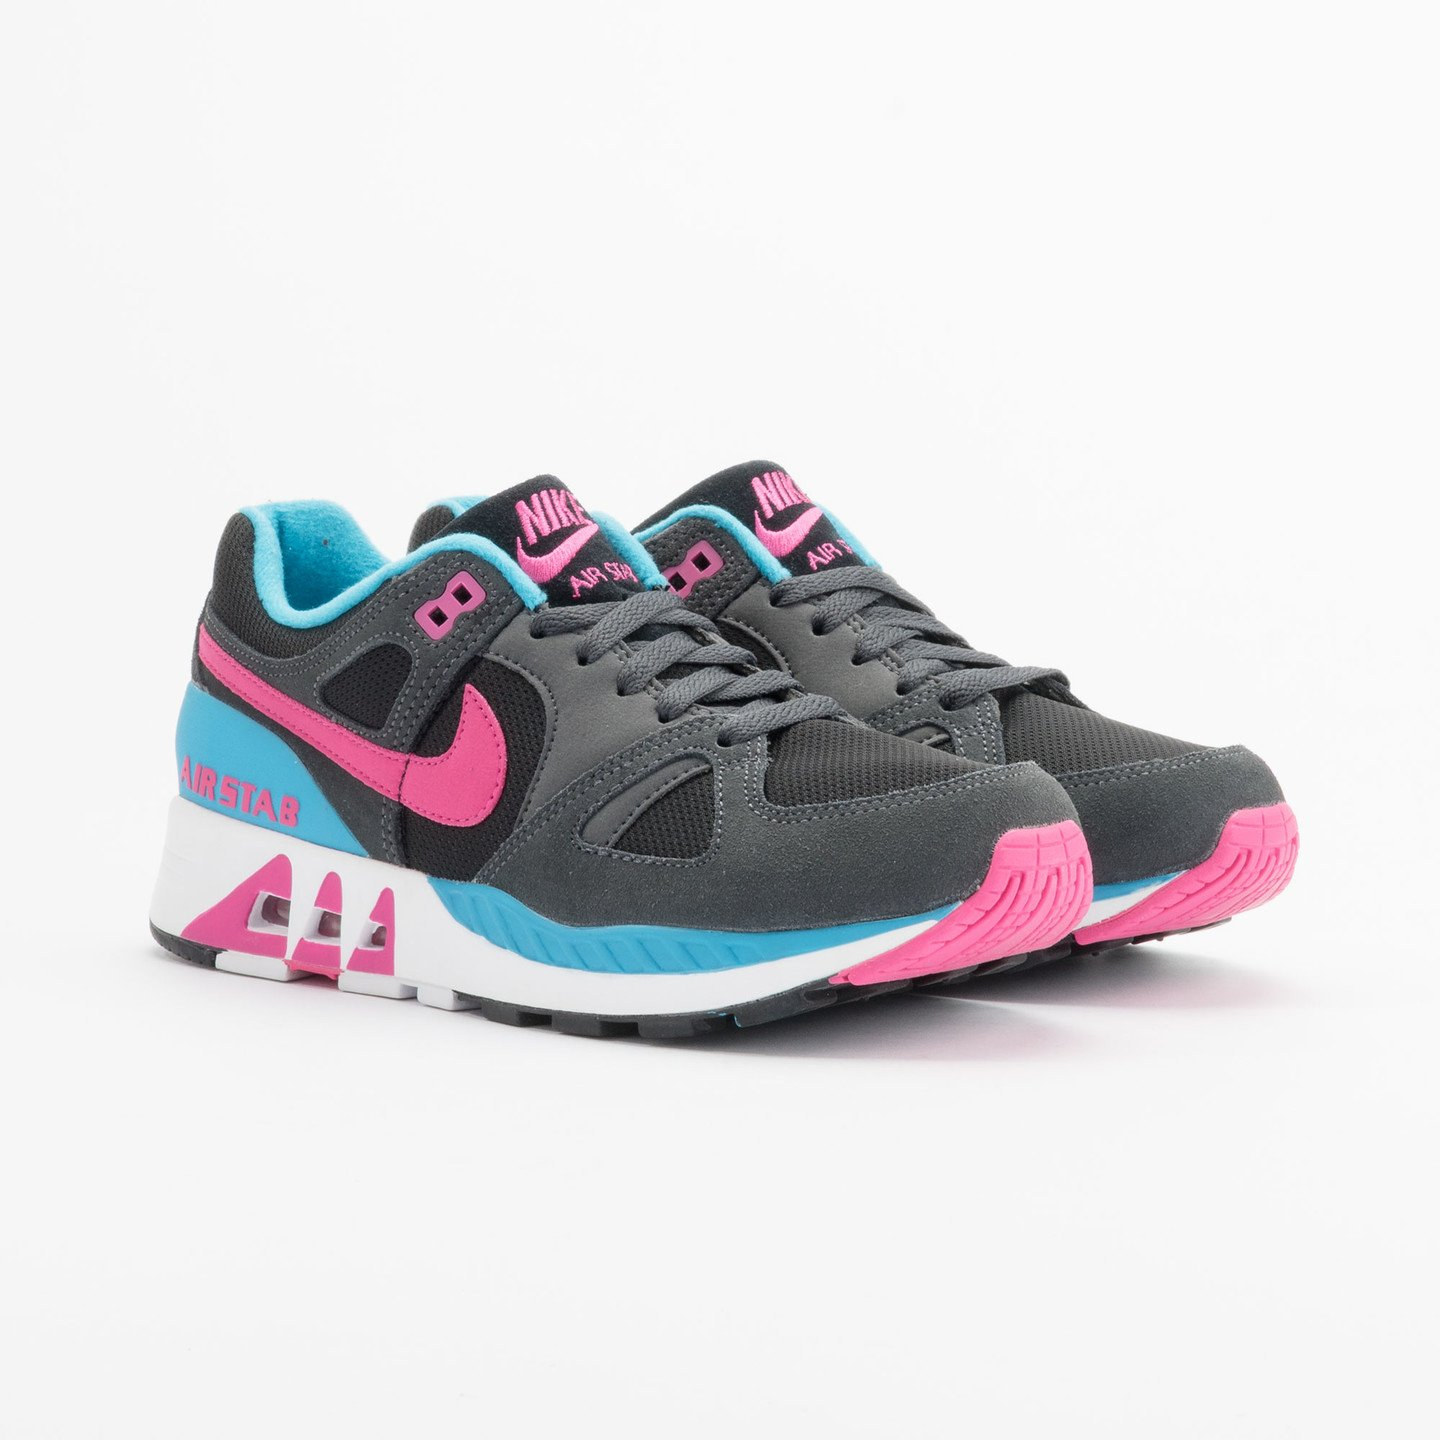 Nike Air Stab Black/Hot Pink-Anthrct-Bl Lgn 312451-004-47.5